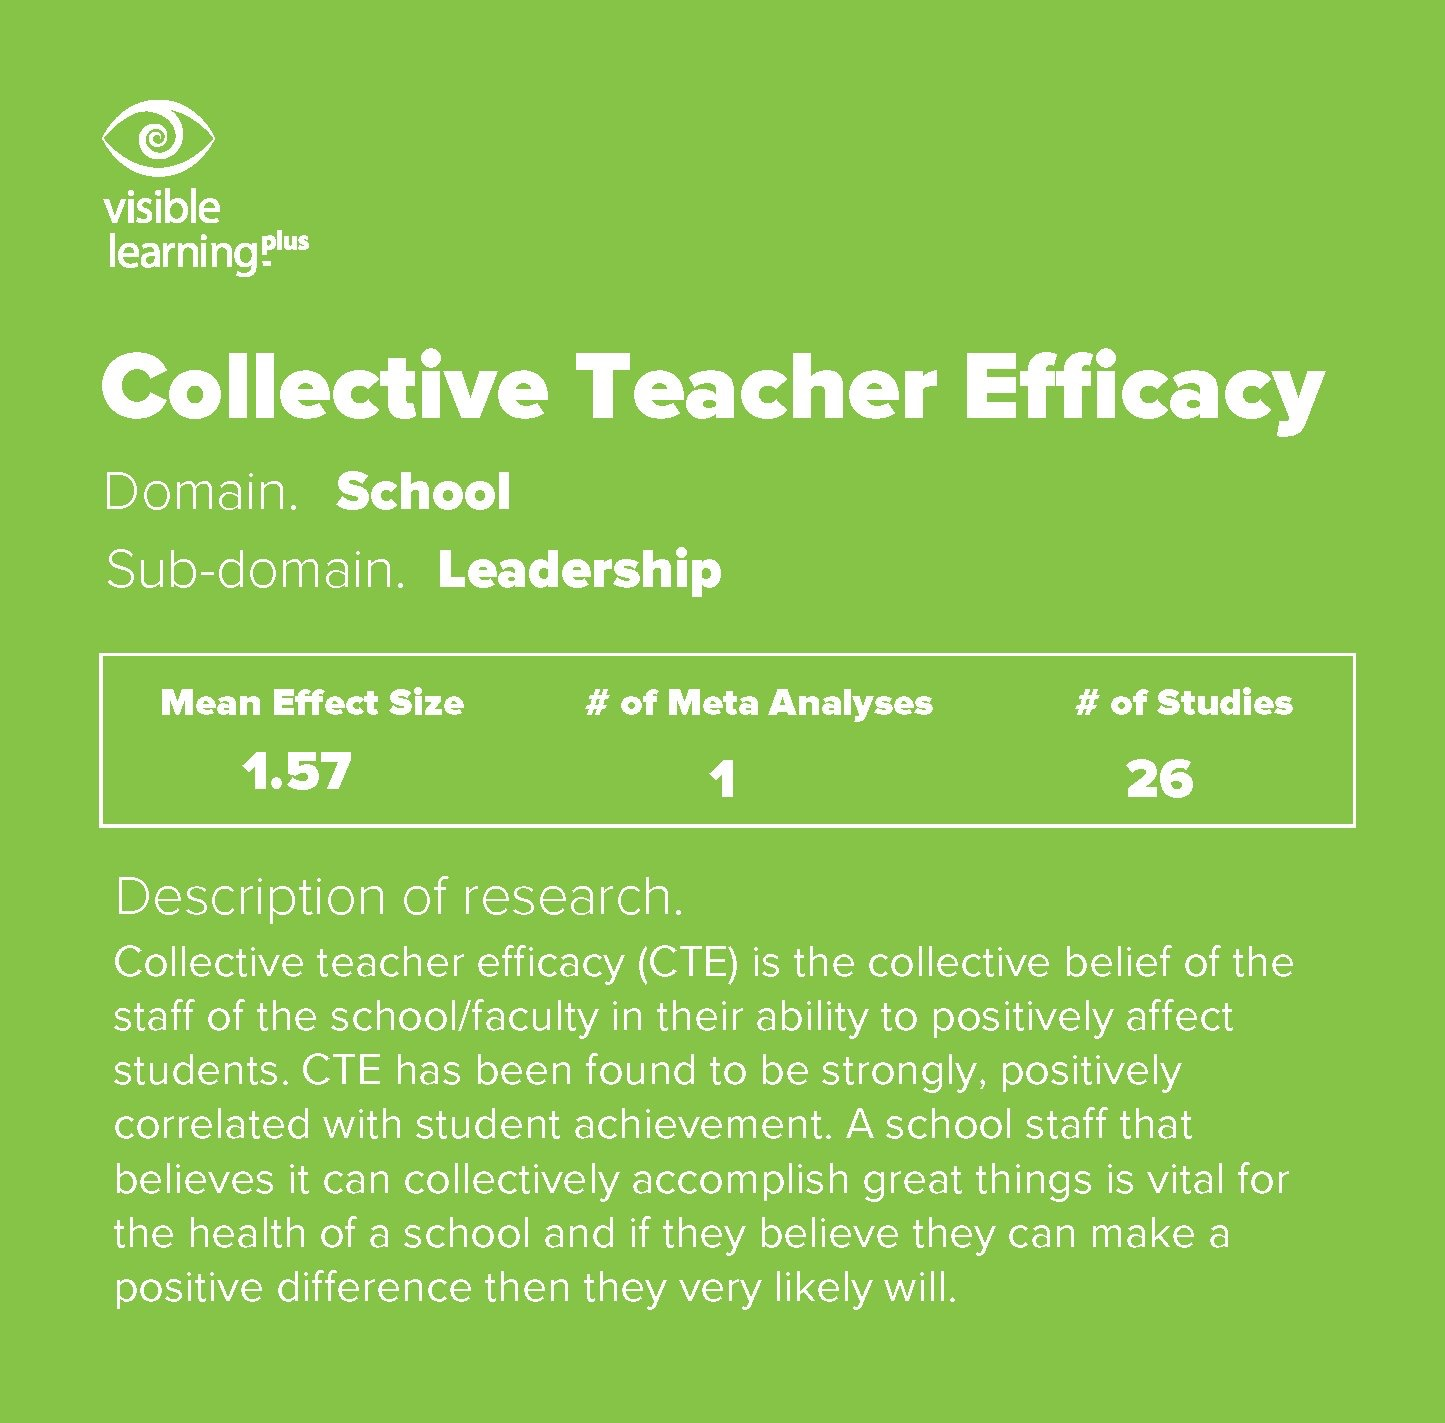 collective-teacher-efficacy-1-57-effect-size-john-hattie-visible-learning